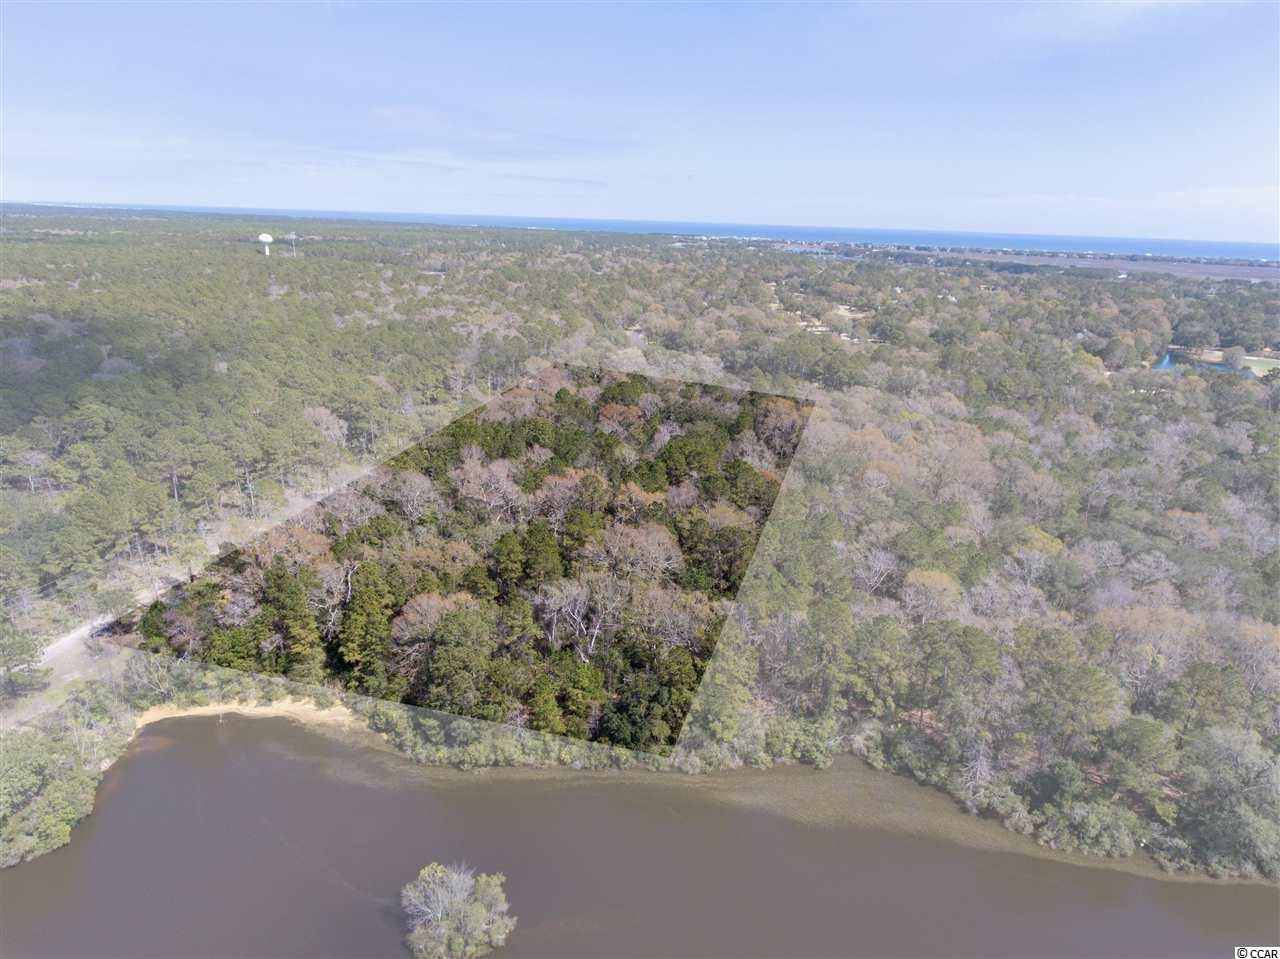 Lake Community Estate Opportunity- Rarely does an opportunity like this present itself for the discerning purchaser. Within DeBordieu Colony, one of the east coast's most unique private communities, lies only a handful of true estate-sized properties. This offering features approximately five acres of lowcountry South Carolina maritime forest bordered by the former Vanderbilt estate of Arcadia Plantation. Along the rear of the property is a large pond separating this estate from its neighbors. Within the privacy of this parcel one has room for a substantial home and guest cottage, pool, tennis court and gardens. Community amenities include private club facilities with dining, golf and tennis as well as beach and boating access.